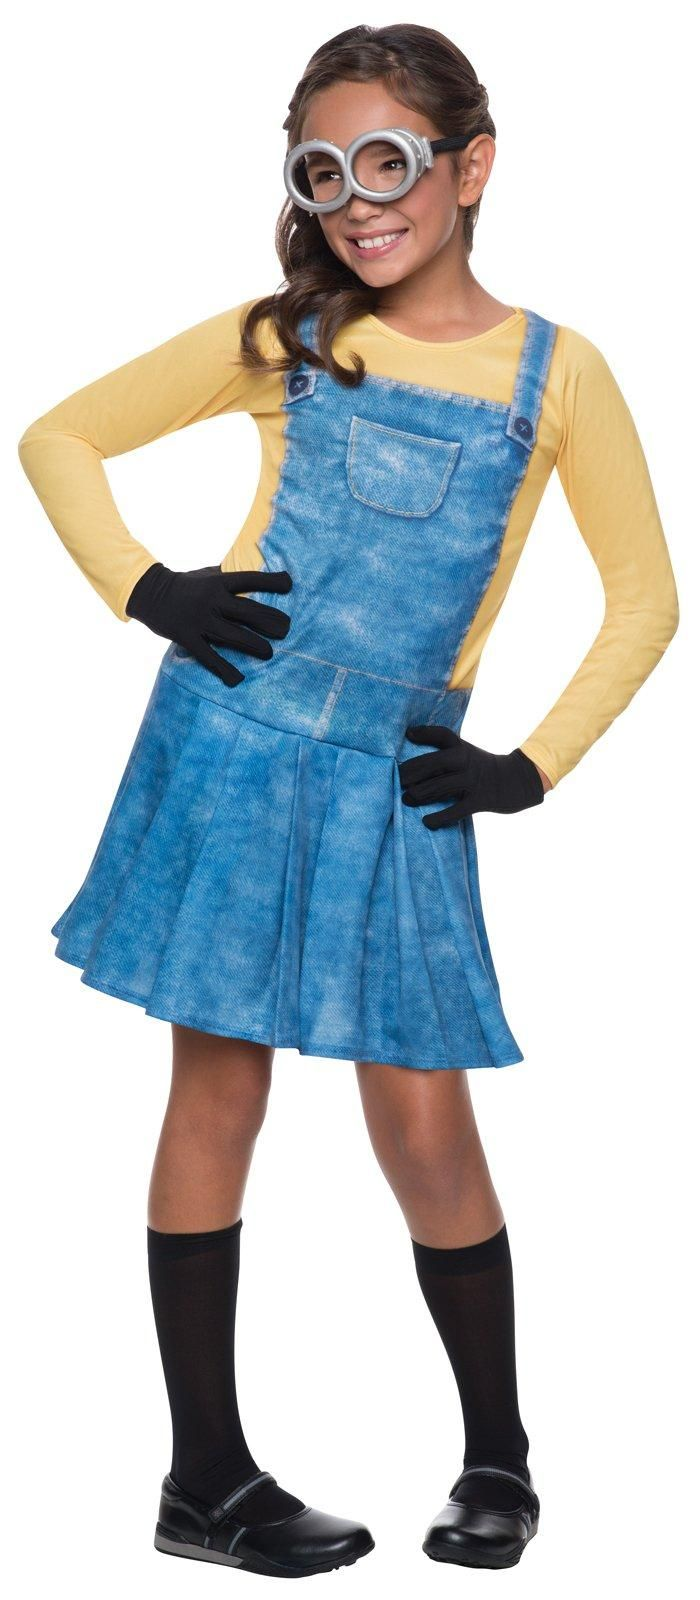 Minions Movies: Female Minion Kids Costume from Buycostumes.com